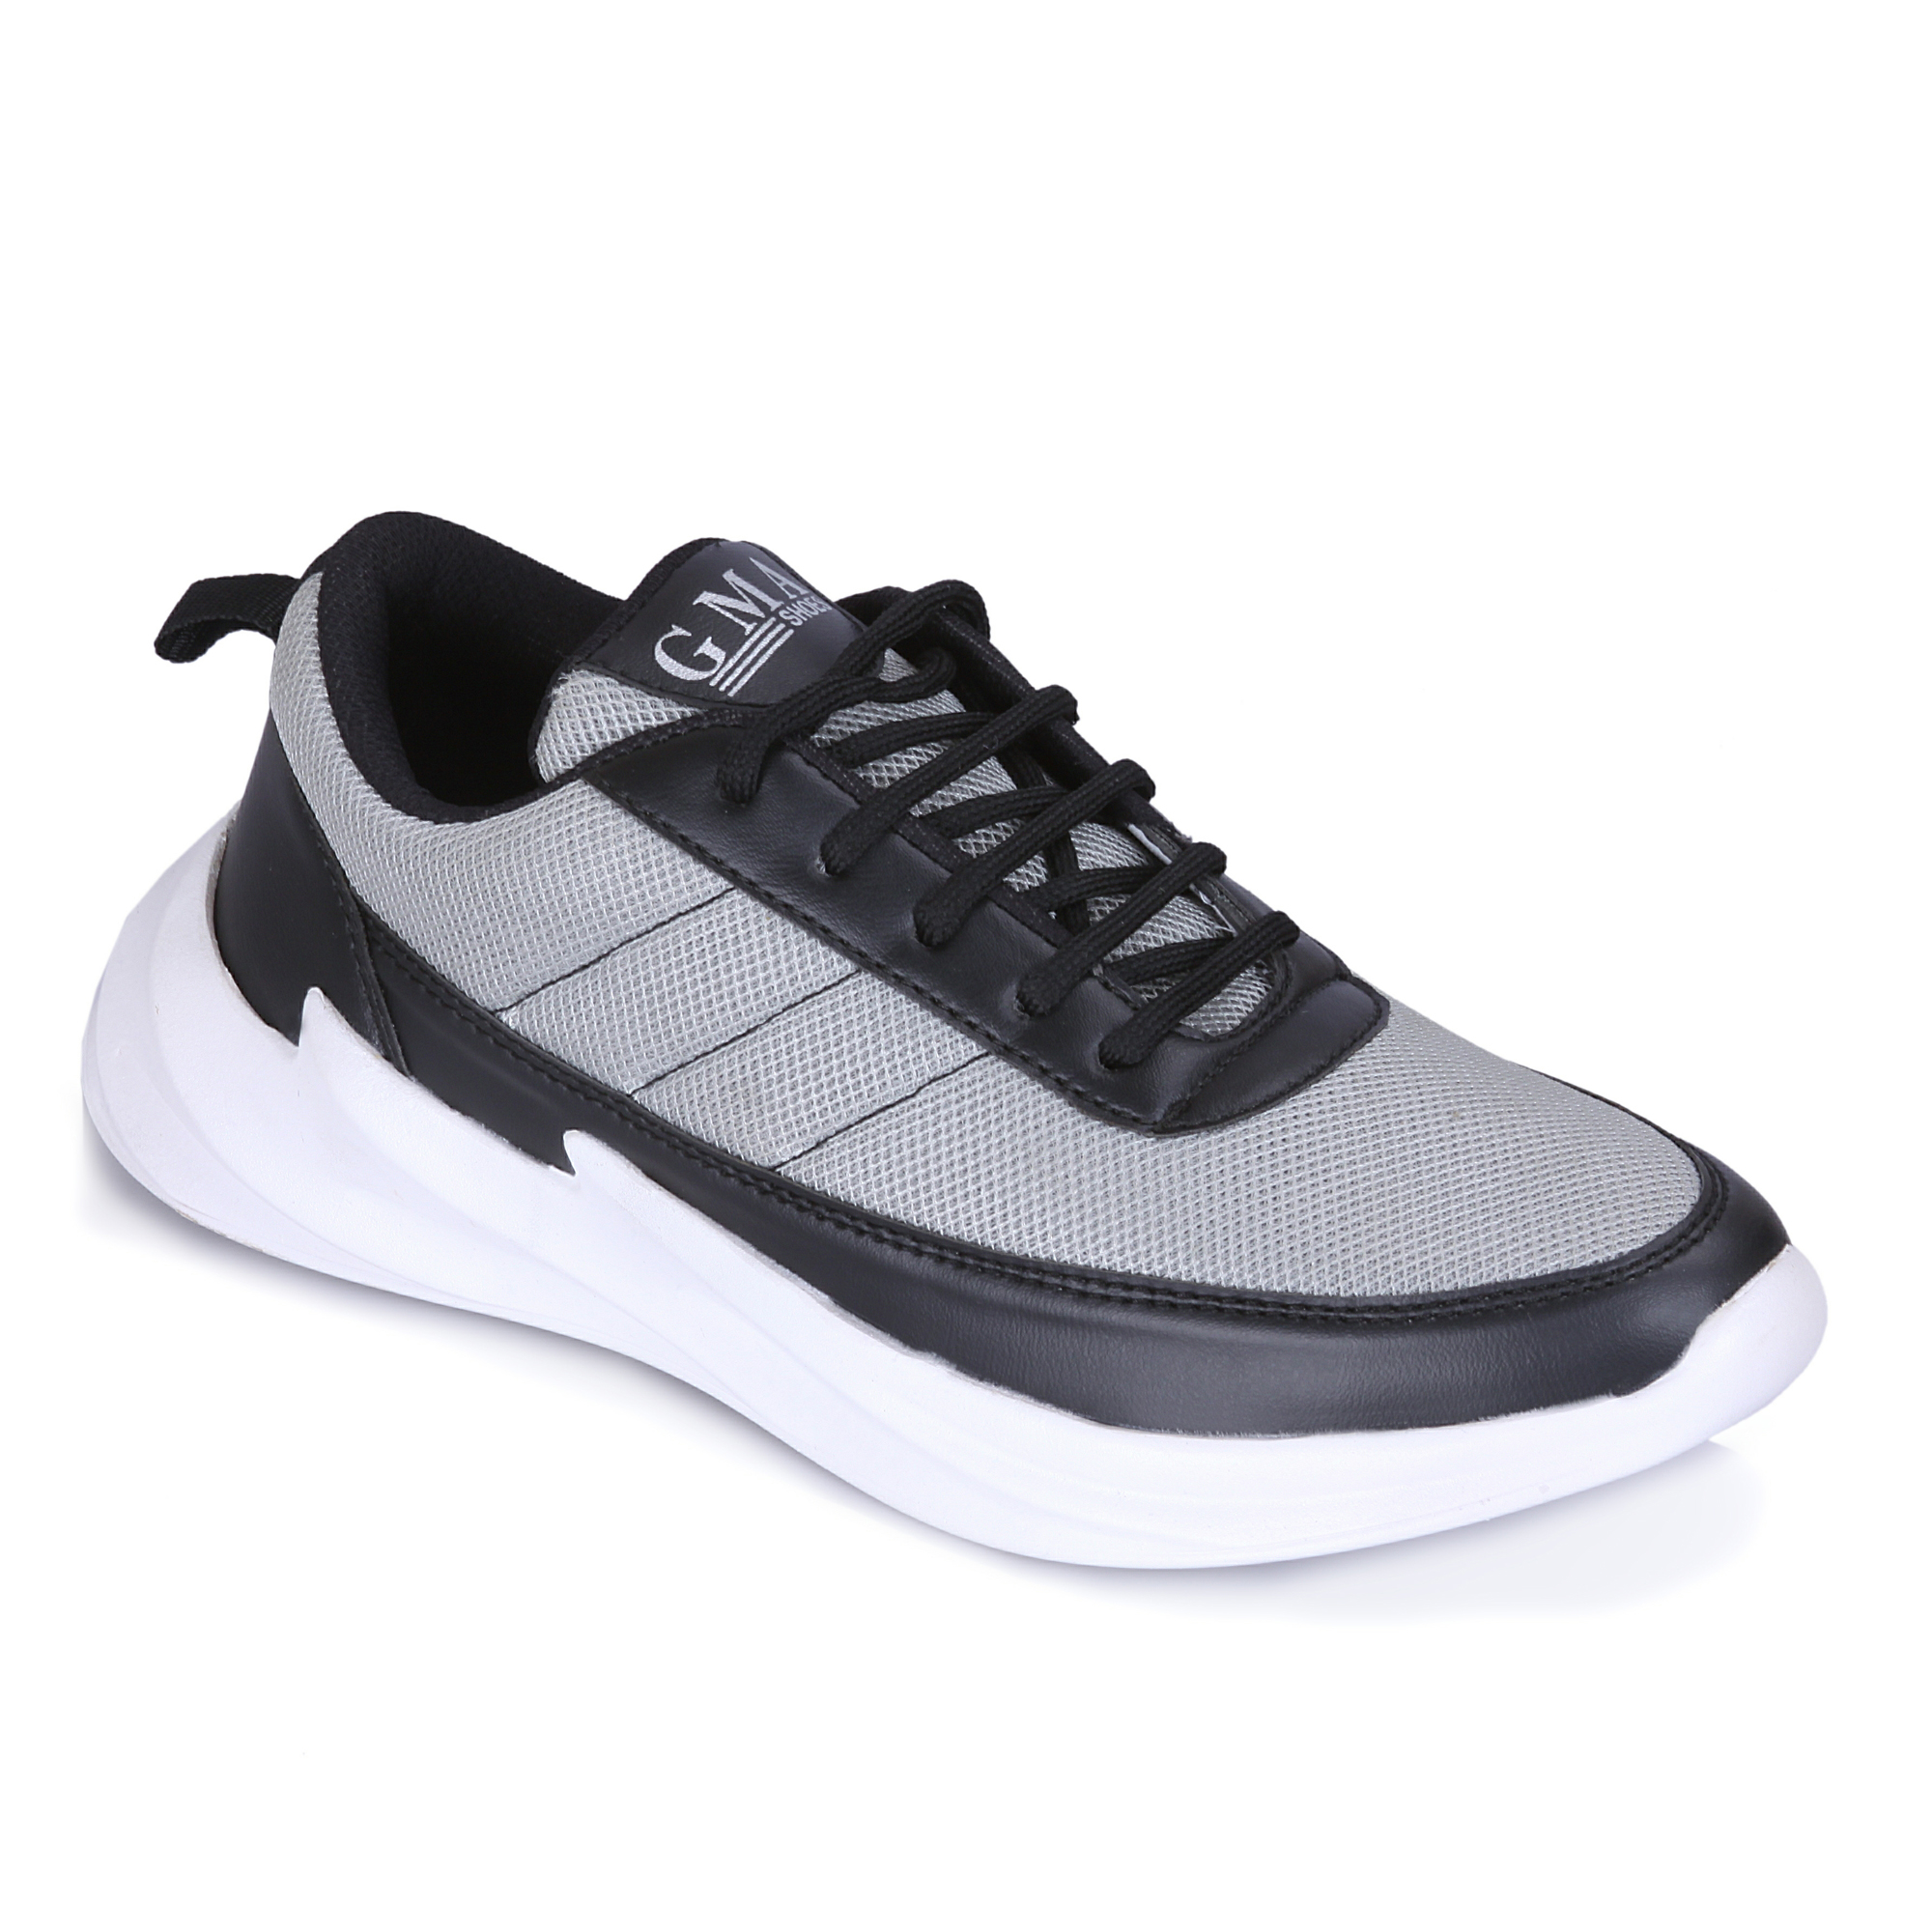 G.M.A Shark Casual Shoe For Men's GM1035_SHARK_GREY (Grey, 6-10, 8 PAIR)